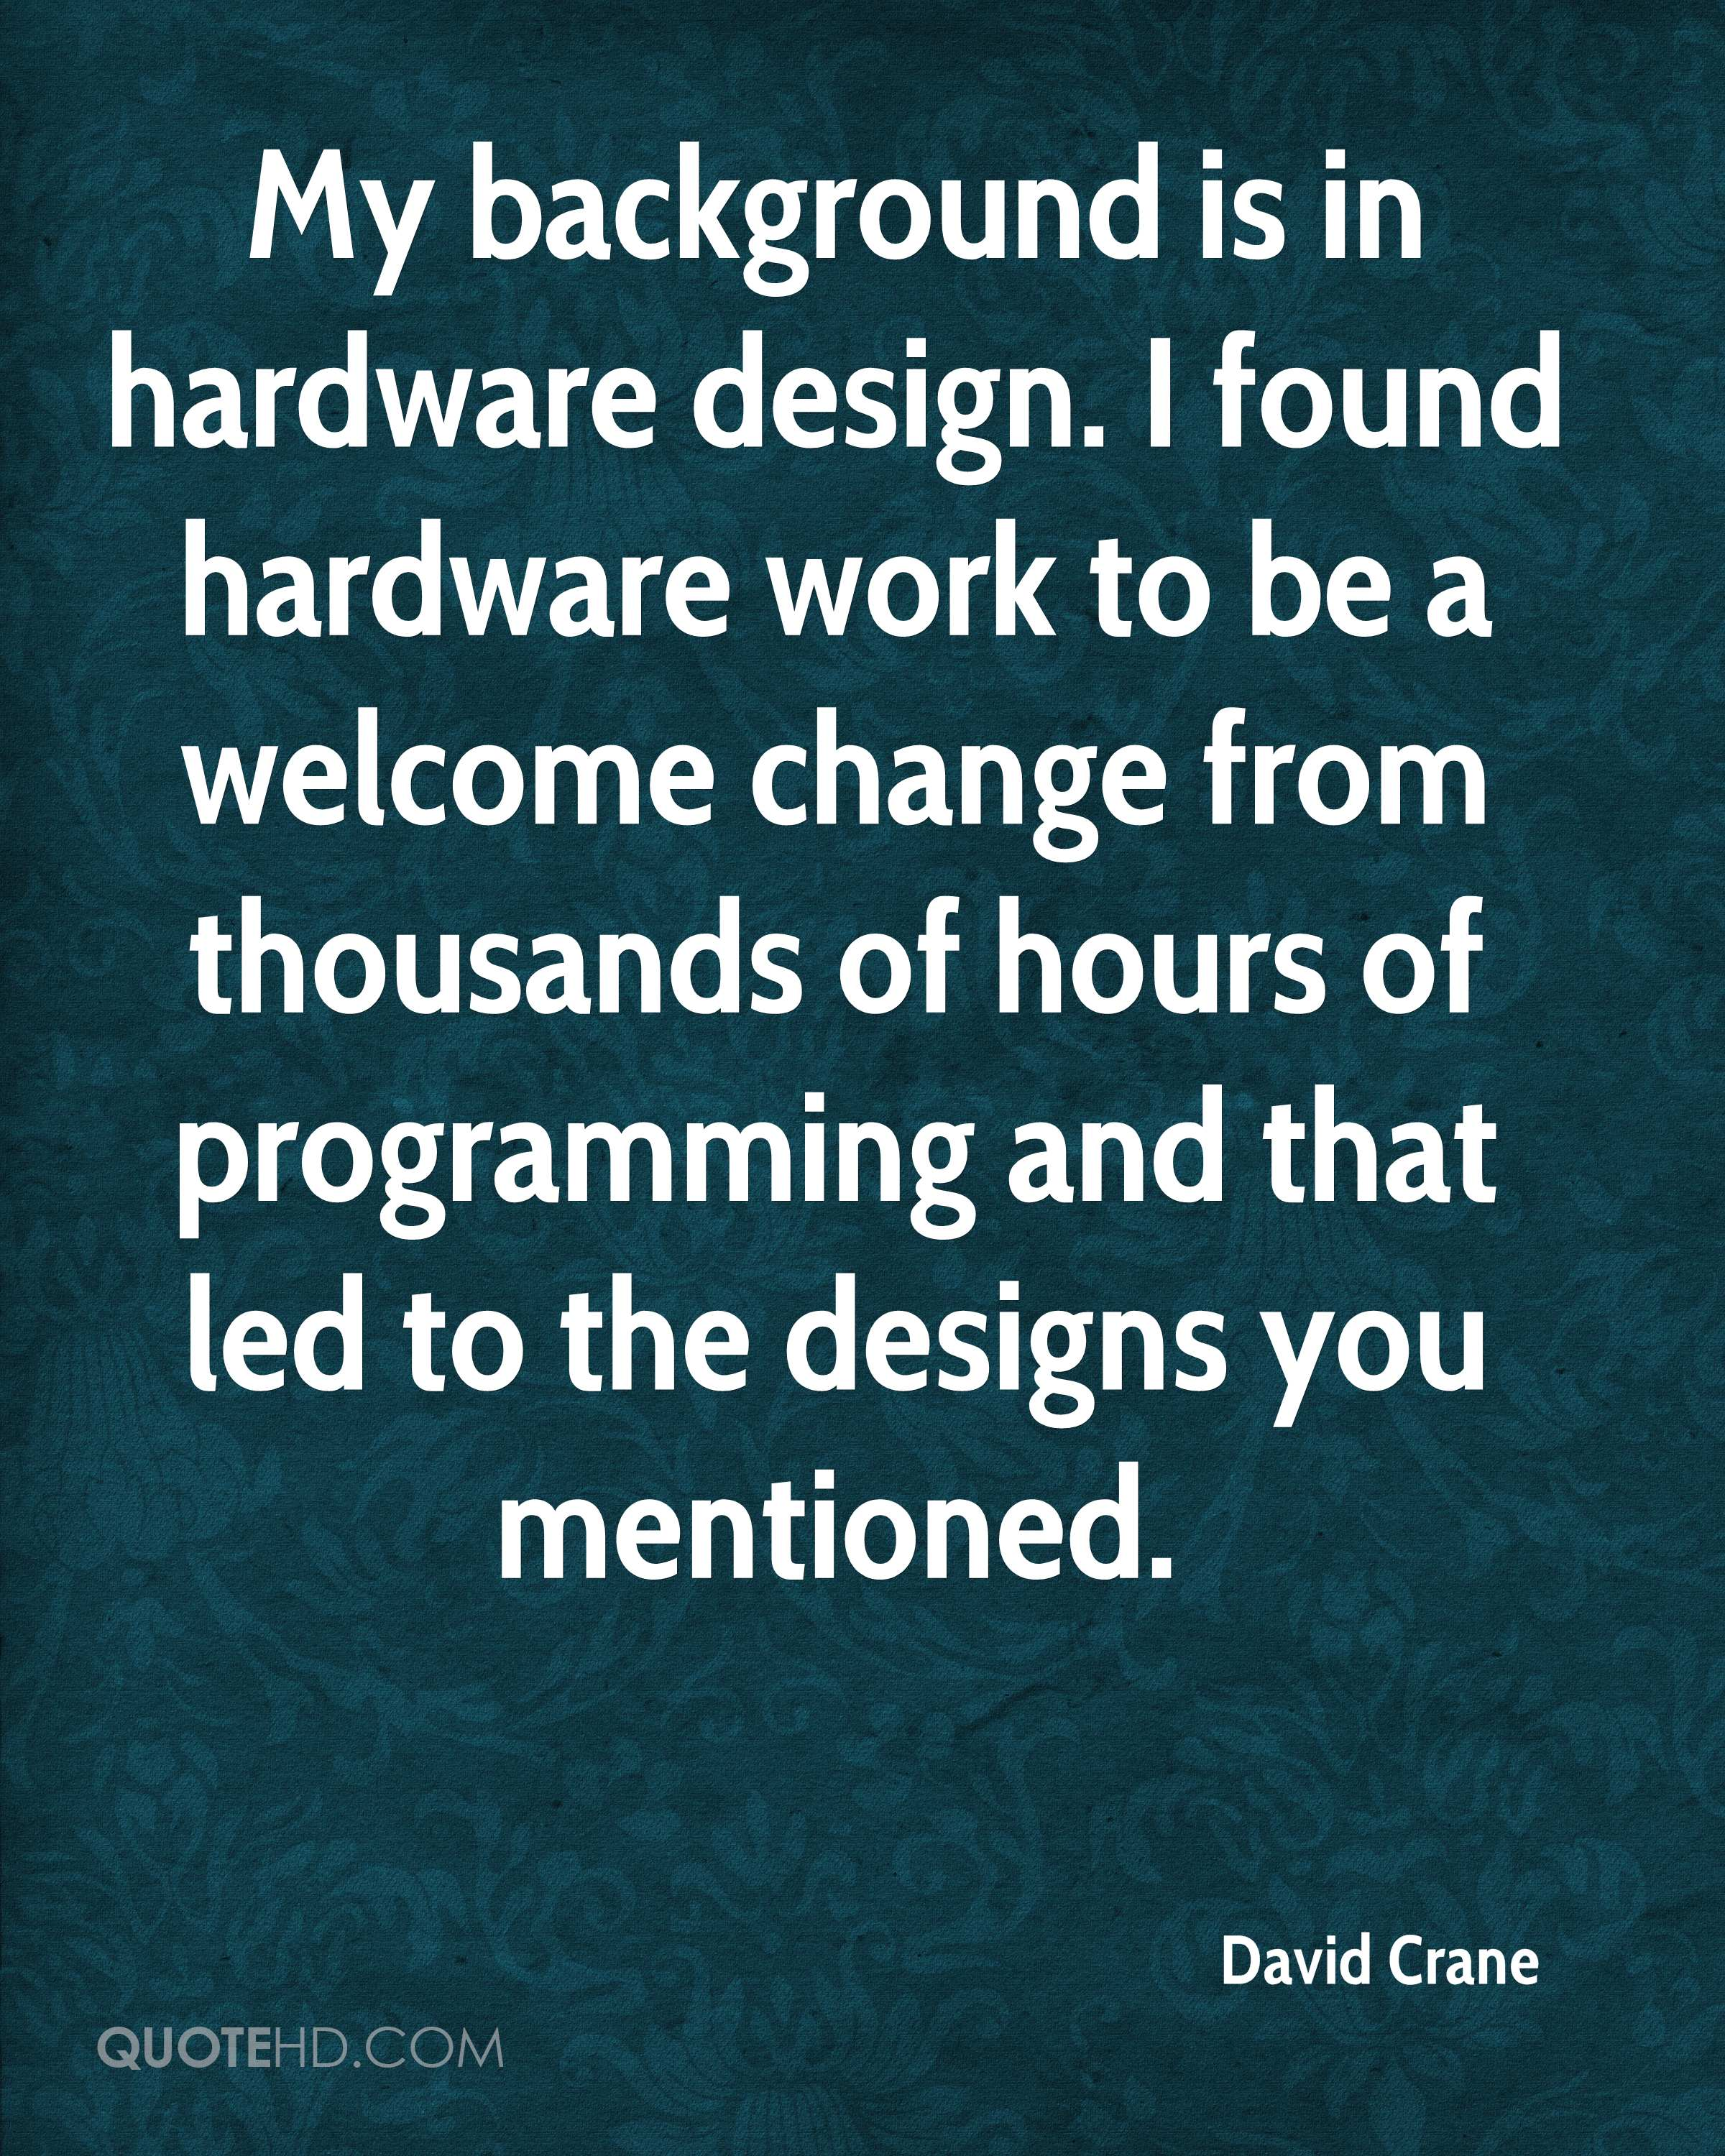 My background is in hardware design. I found hardware work to be a welcome change from thousands of hours of programming and that led to the designs you mentioned.